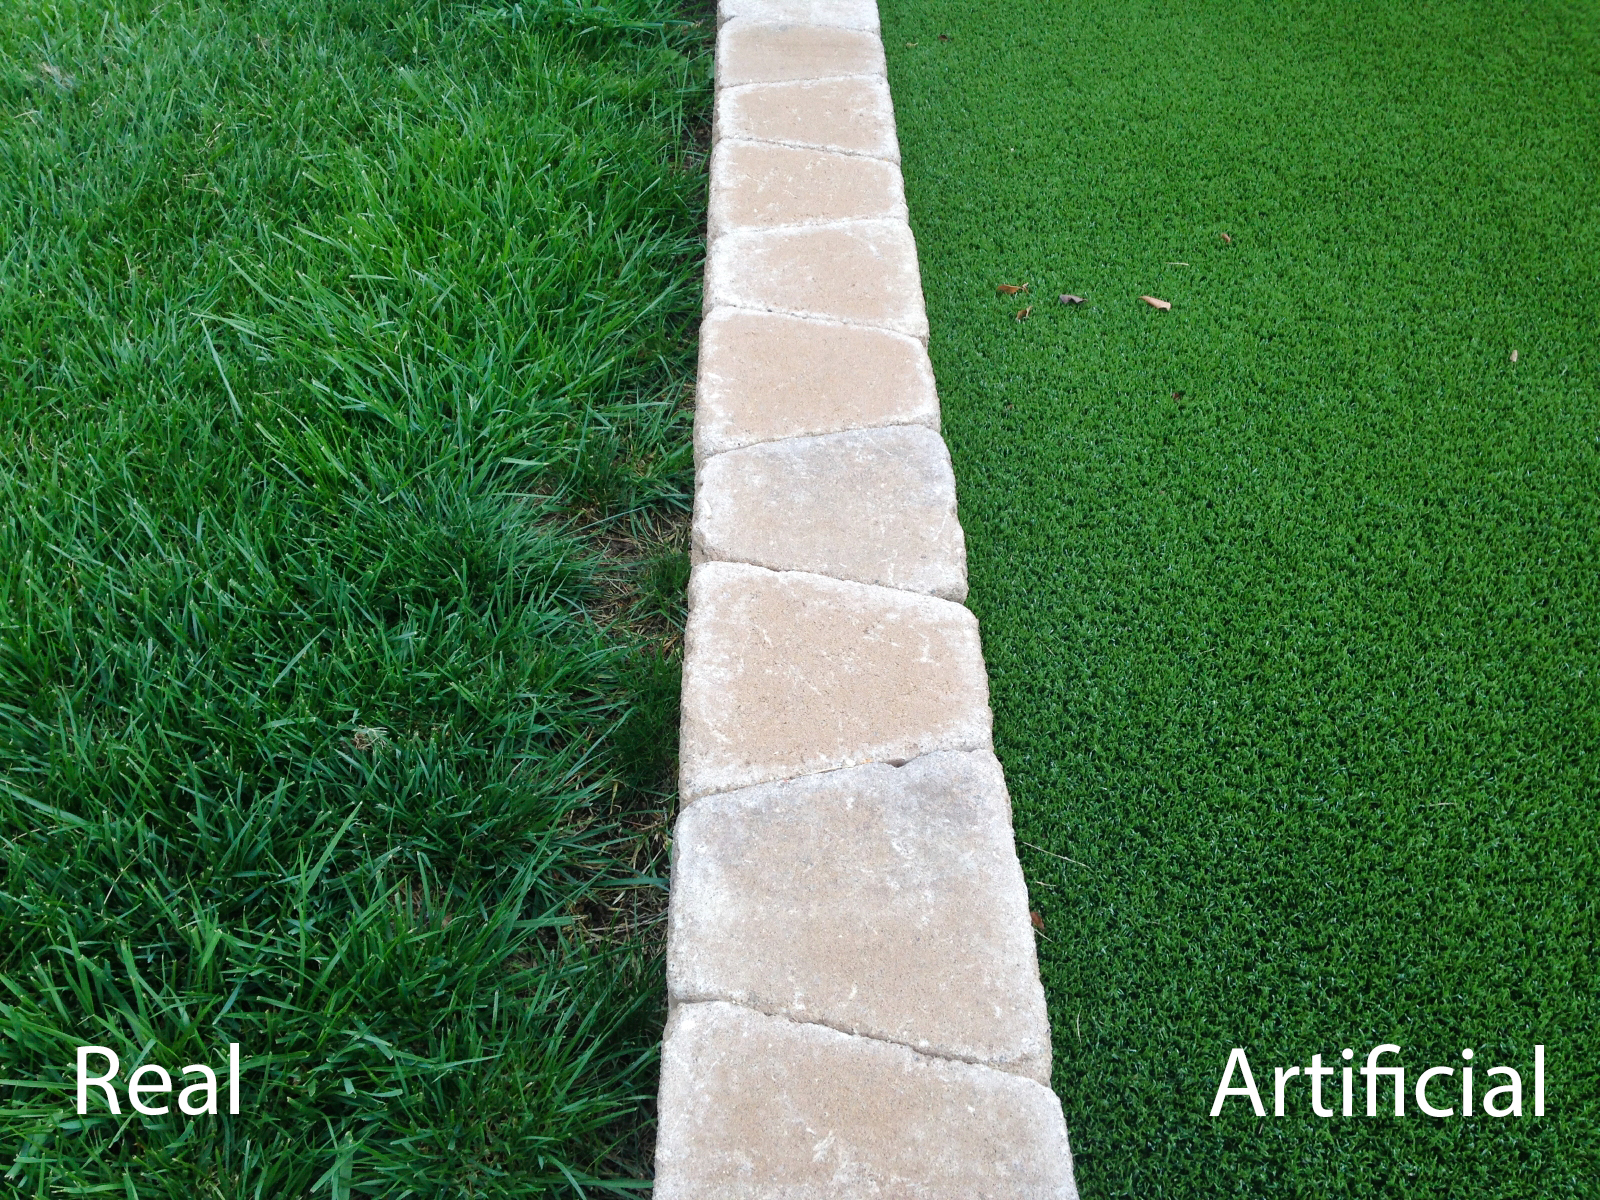 Real Vs Artificial Turf